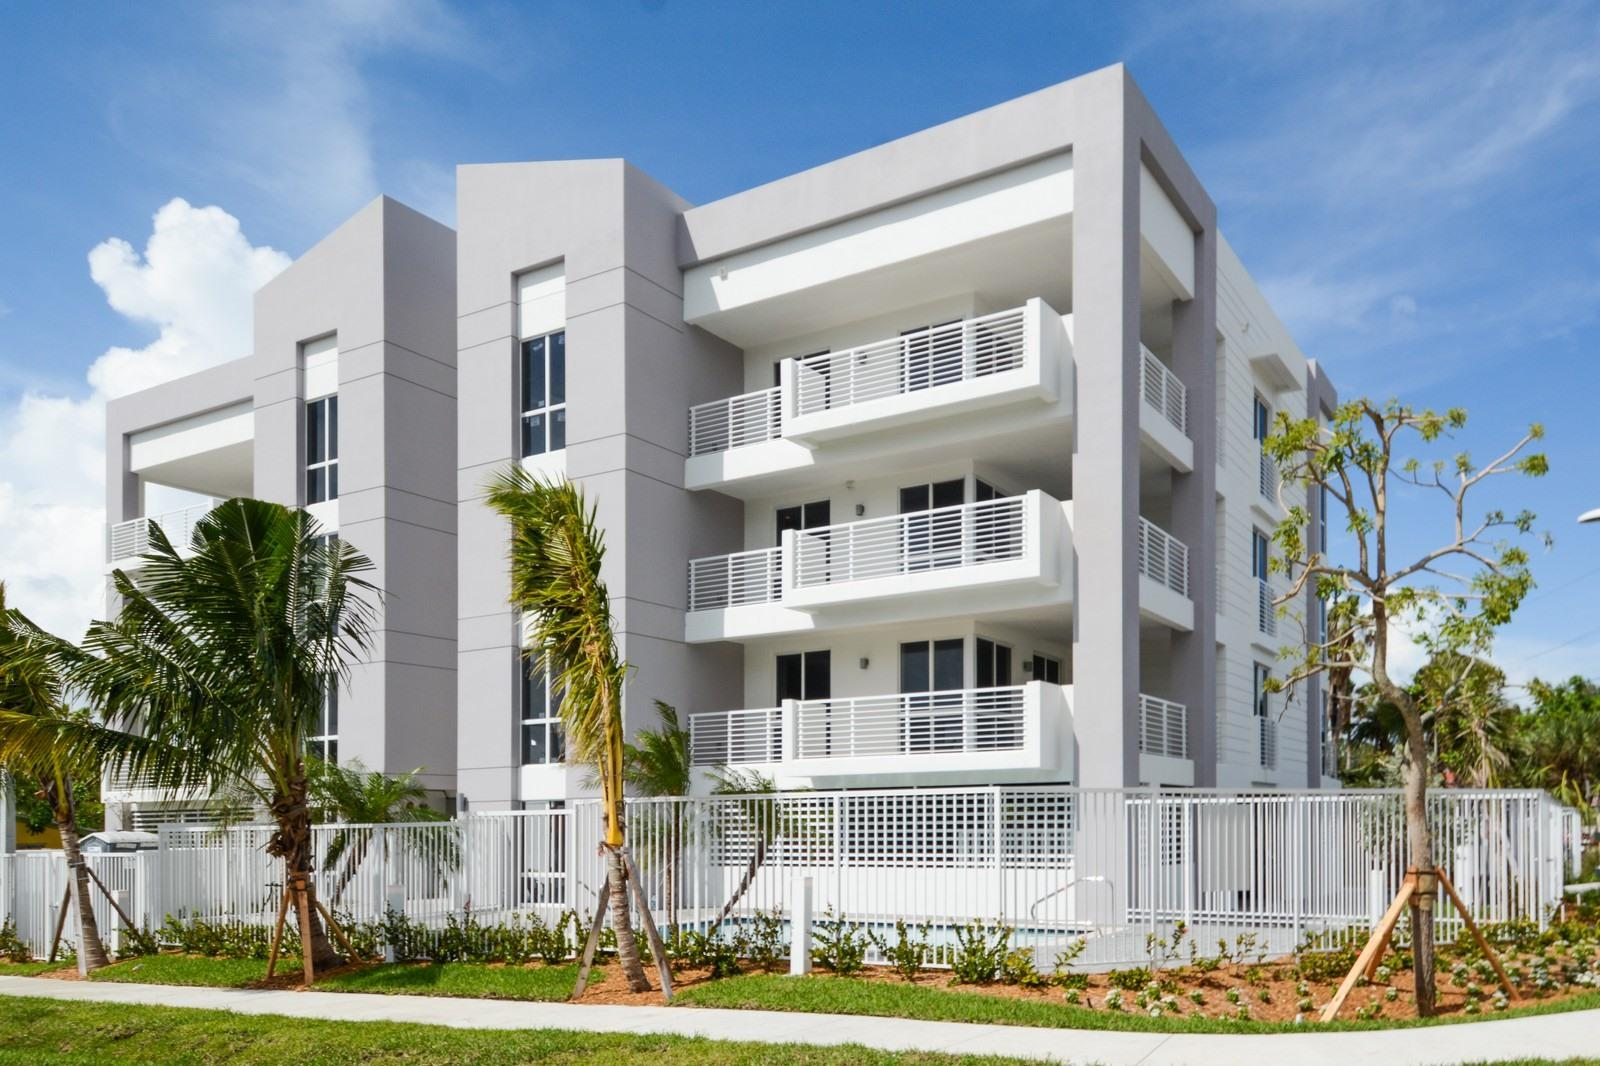 Home for sale in P6 Deerfield Beach Florida